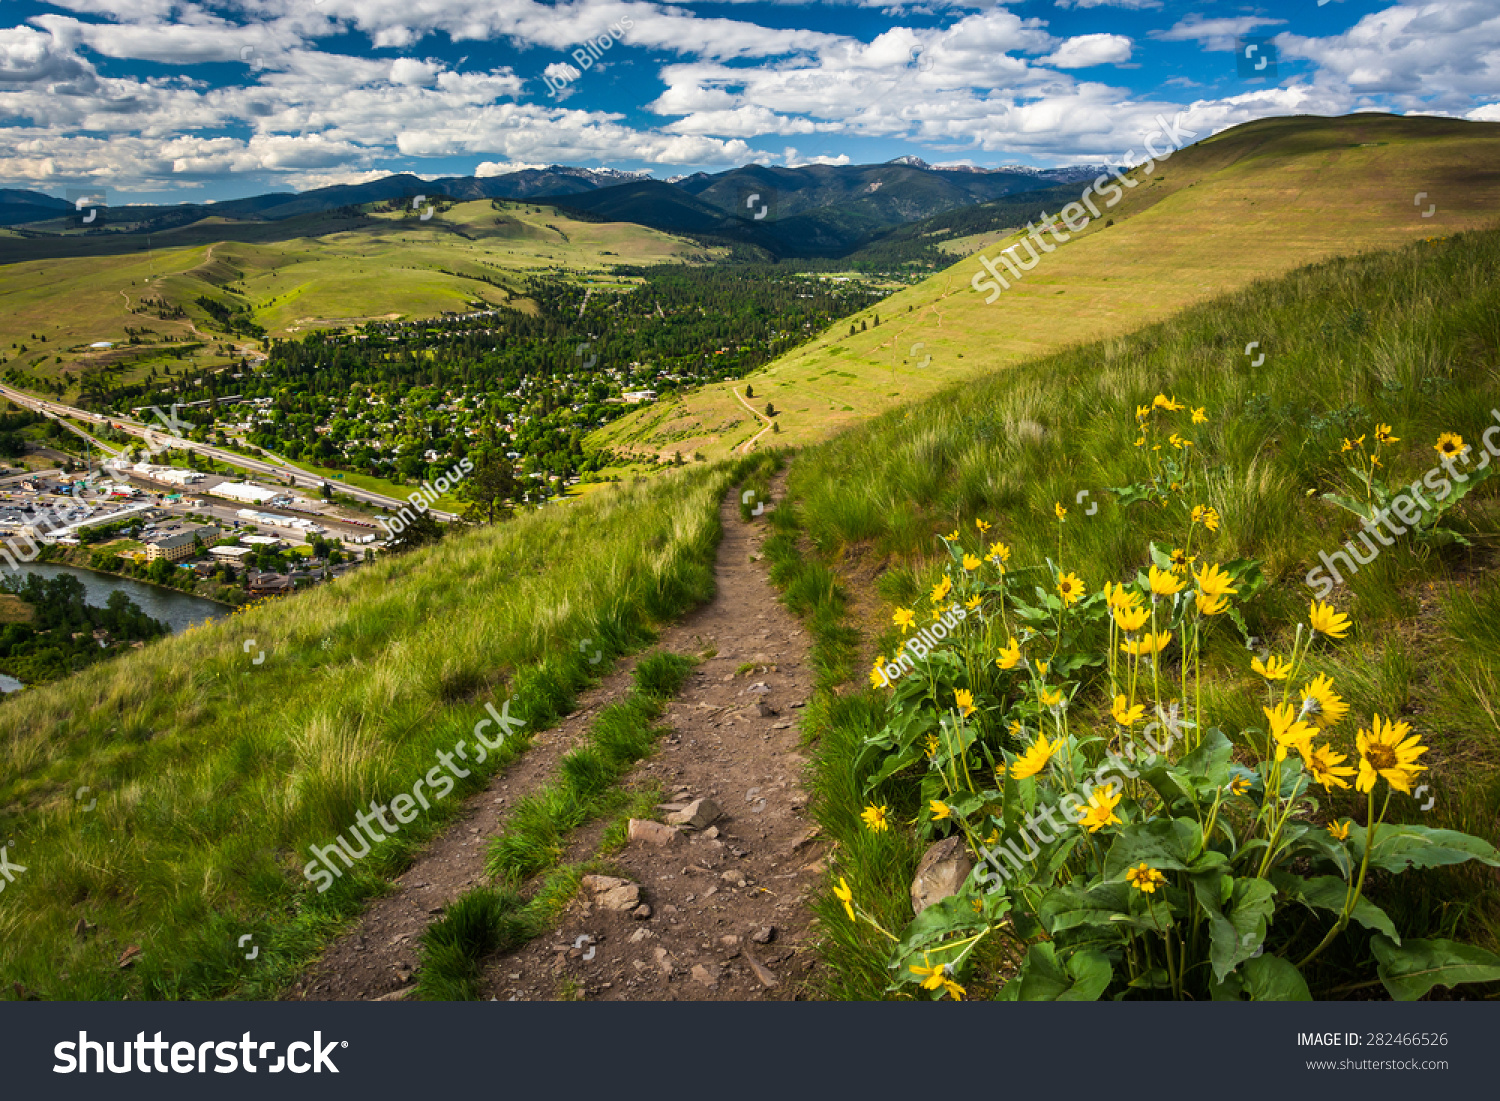 stock-photo-trail-and-flowers-on-mount-sentinel-in-missoula-montana-282466526.jpg